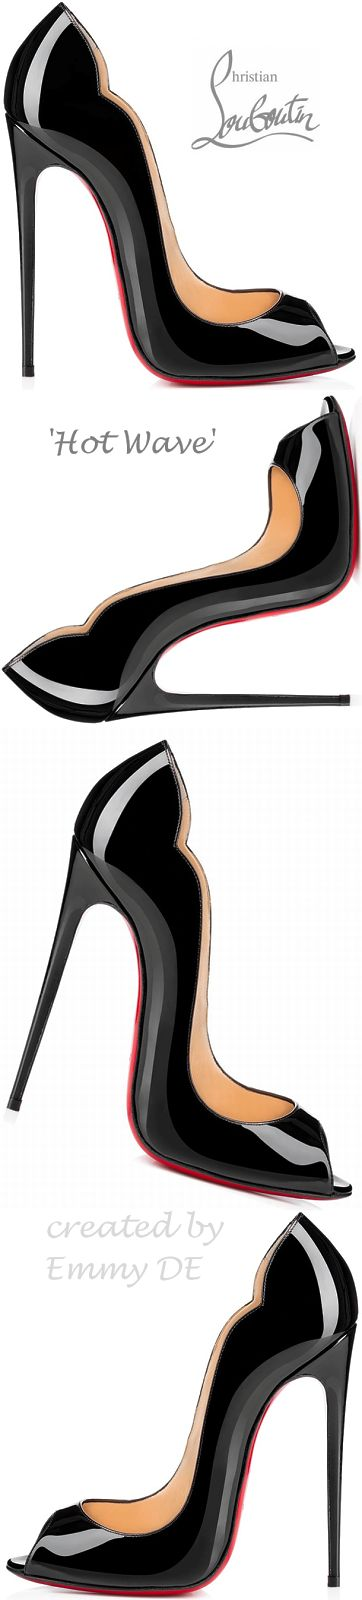 Christian Louboutin ~ Black Patent Leather Pumps 2015